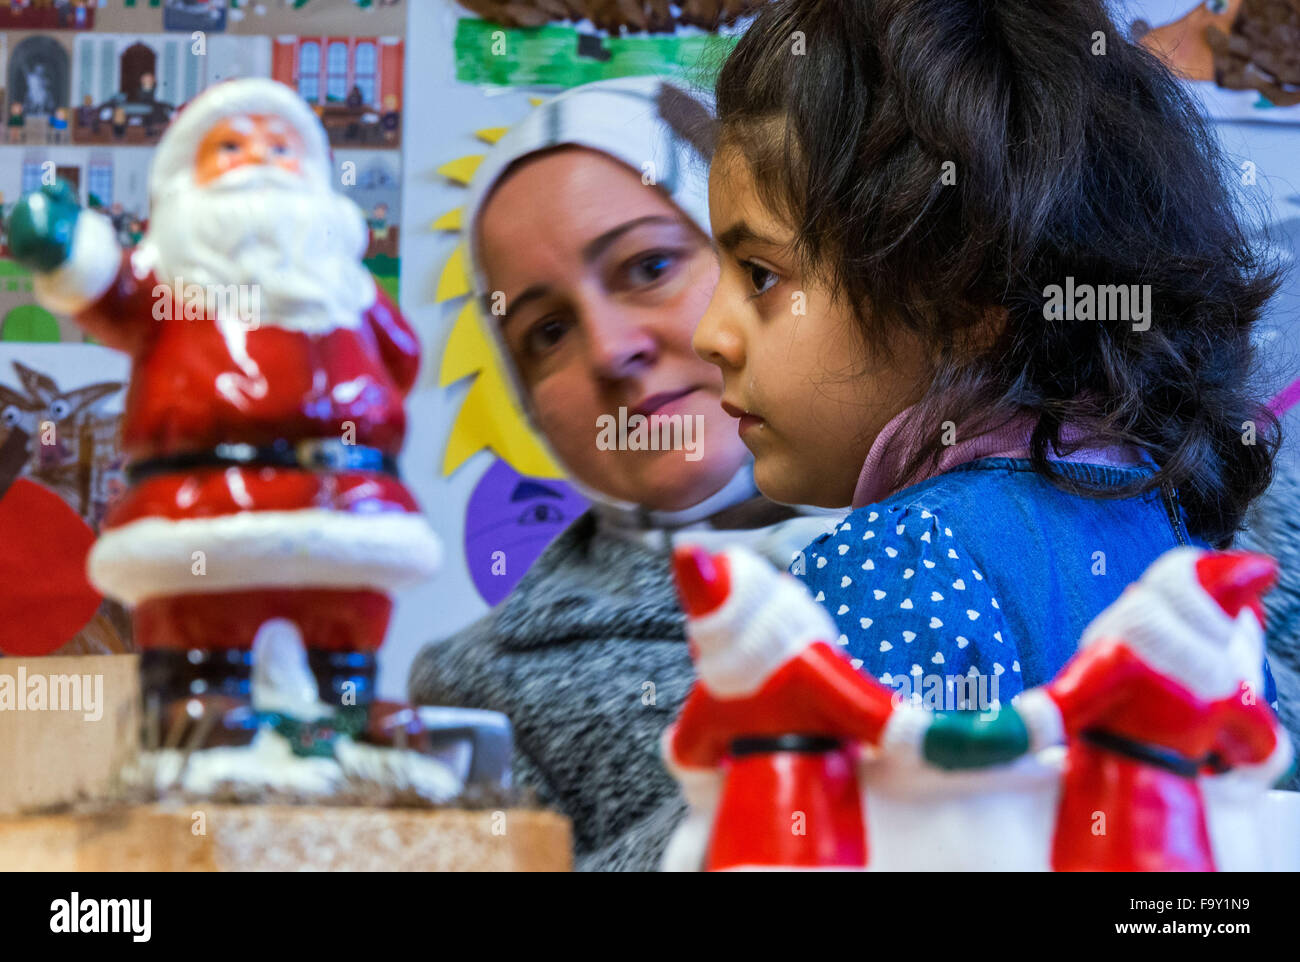 Schwerin, Germany. 14th Dec, 2015. Five-year-old Nisren from Syria and her mother Abir Kroma attend the Christmas - Stock Image